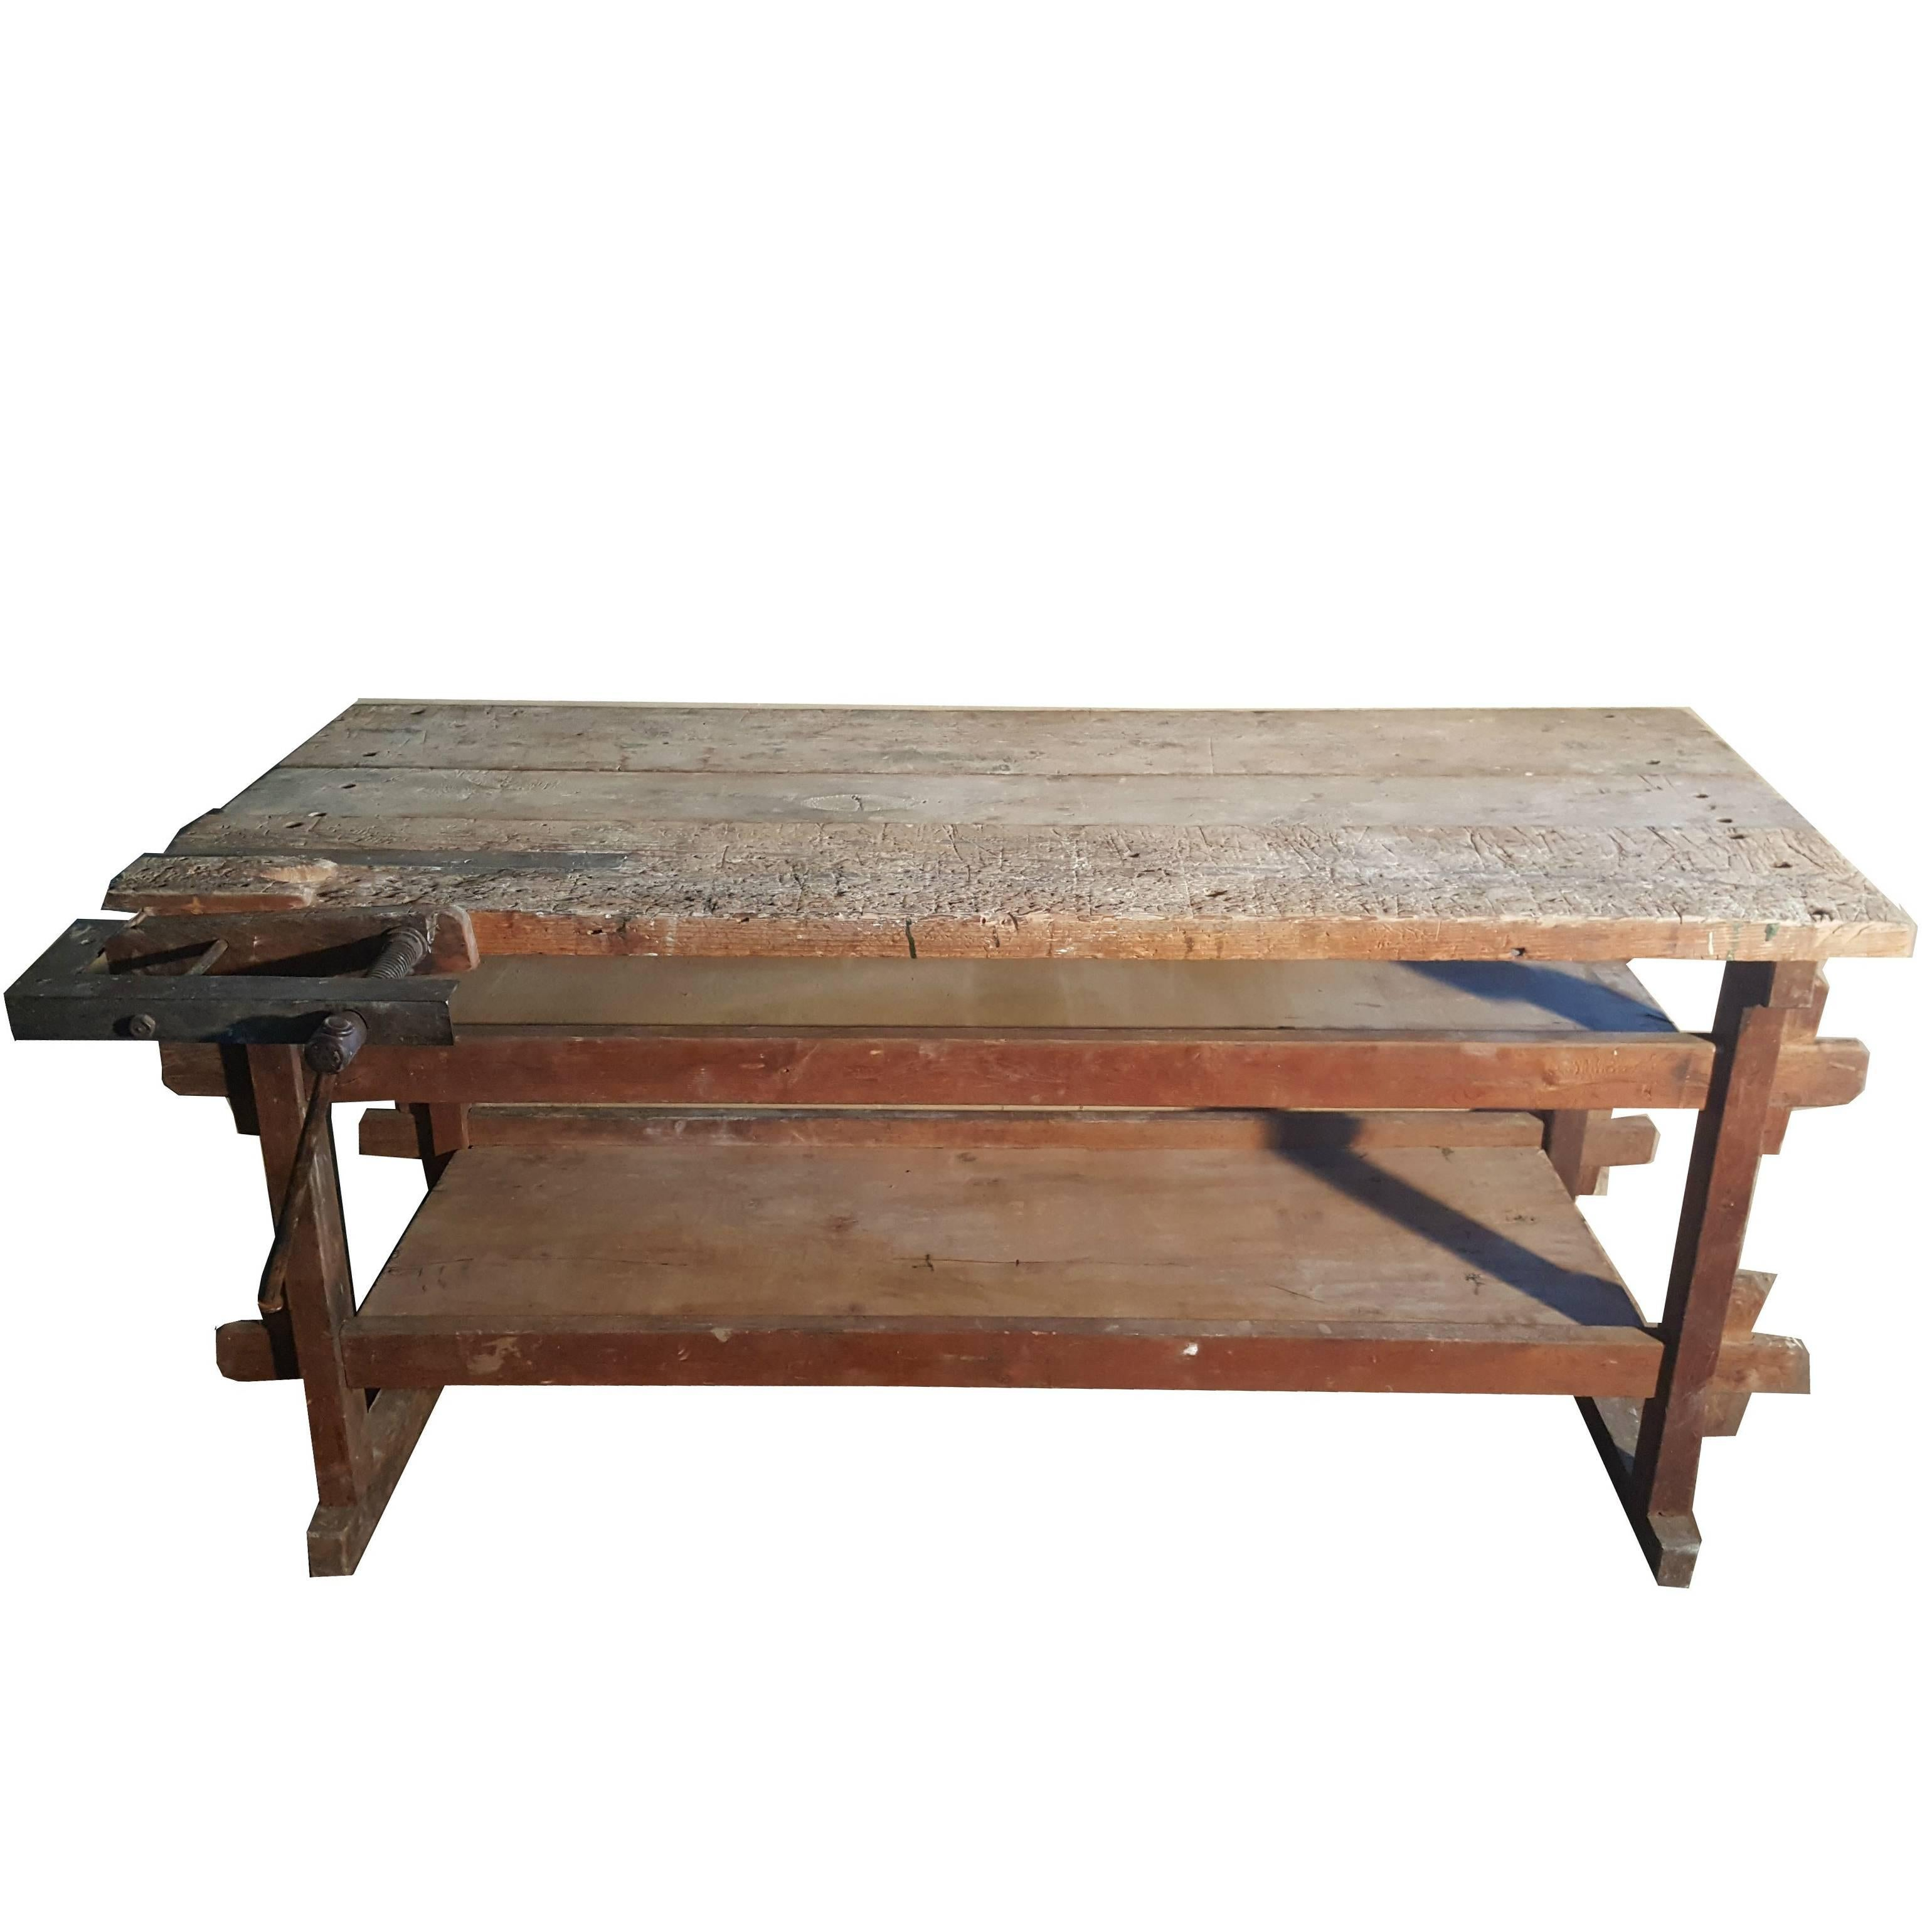 Vintage Industrial Wooden Work Bench Or Carpenters Table, Early 20th Century